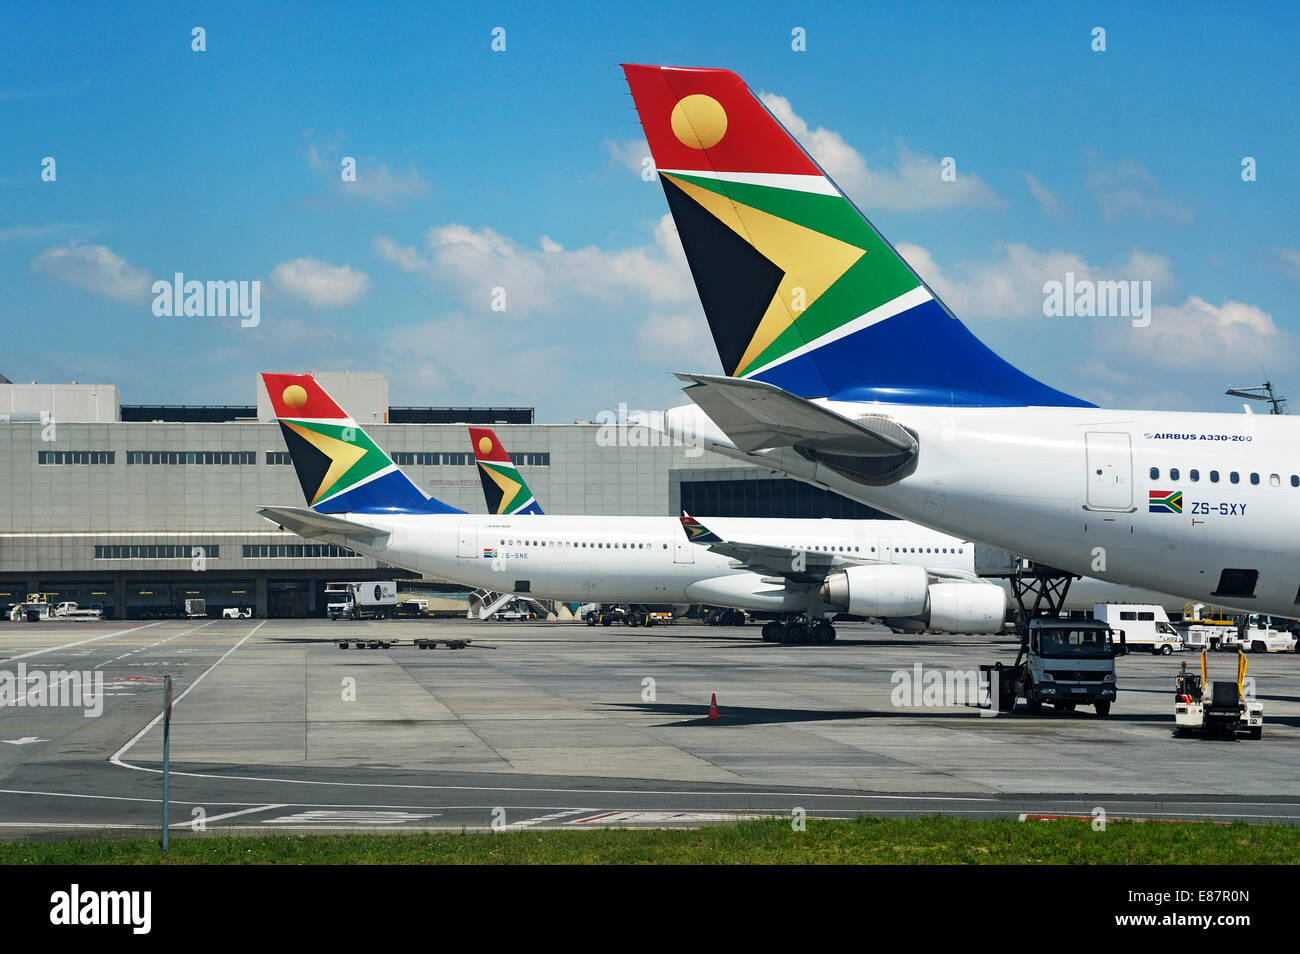 Airbus with the logo of SAA, South African Airways at OR Tambo International Airport, Johannesburg, South Africa - Stock Image